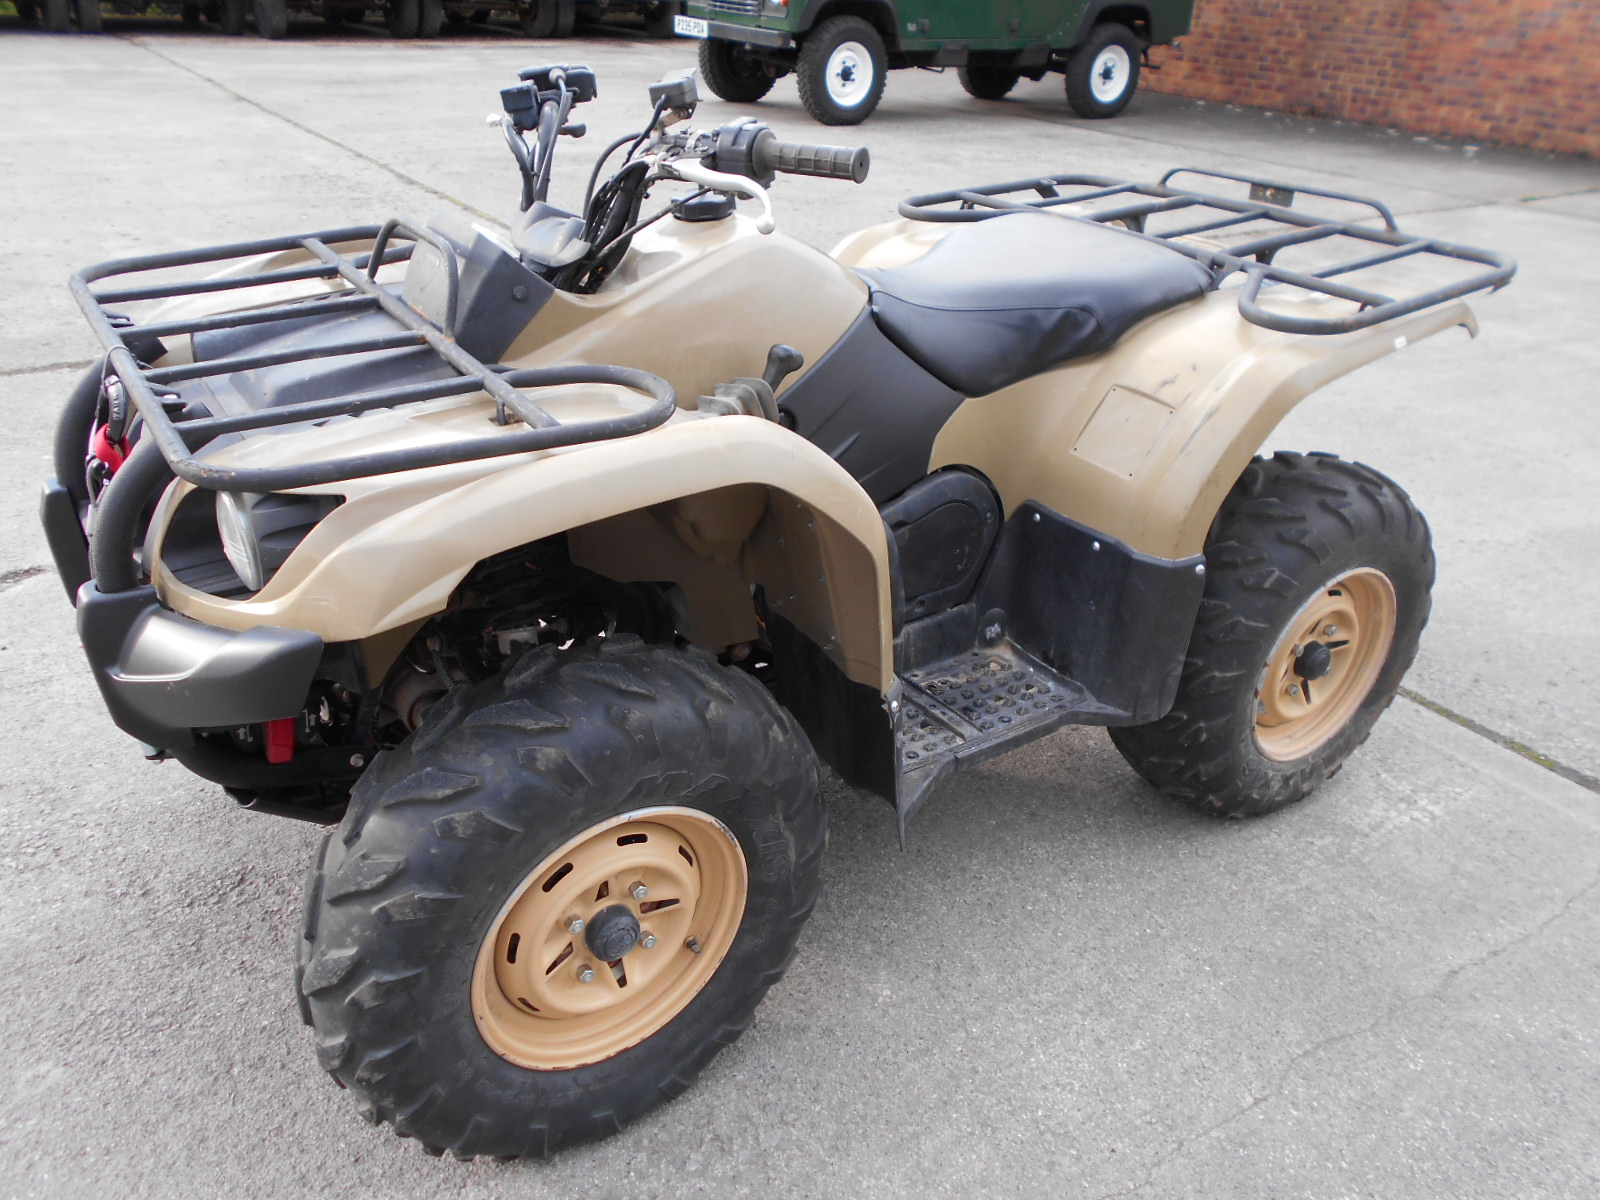 Ex military yamaha grizzly 450 quad no vat for Yamaha grizzly 450 for sale